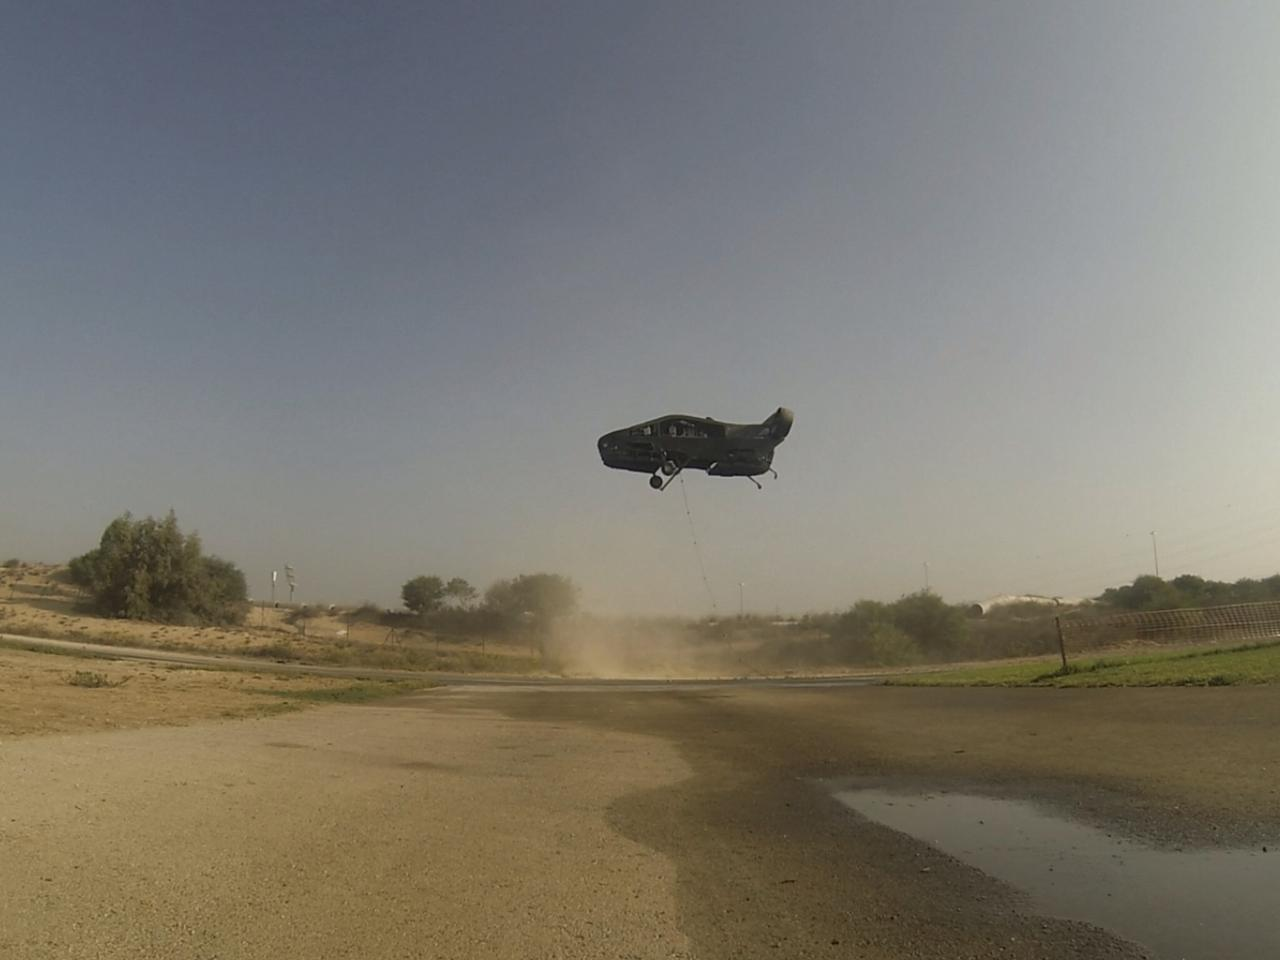 The AirMule performs a 180-degree turn